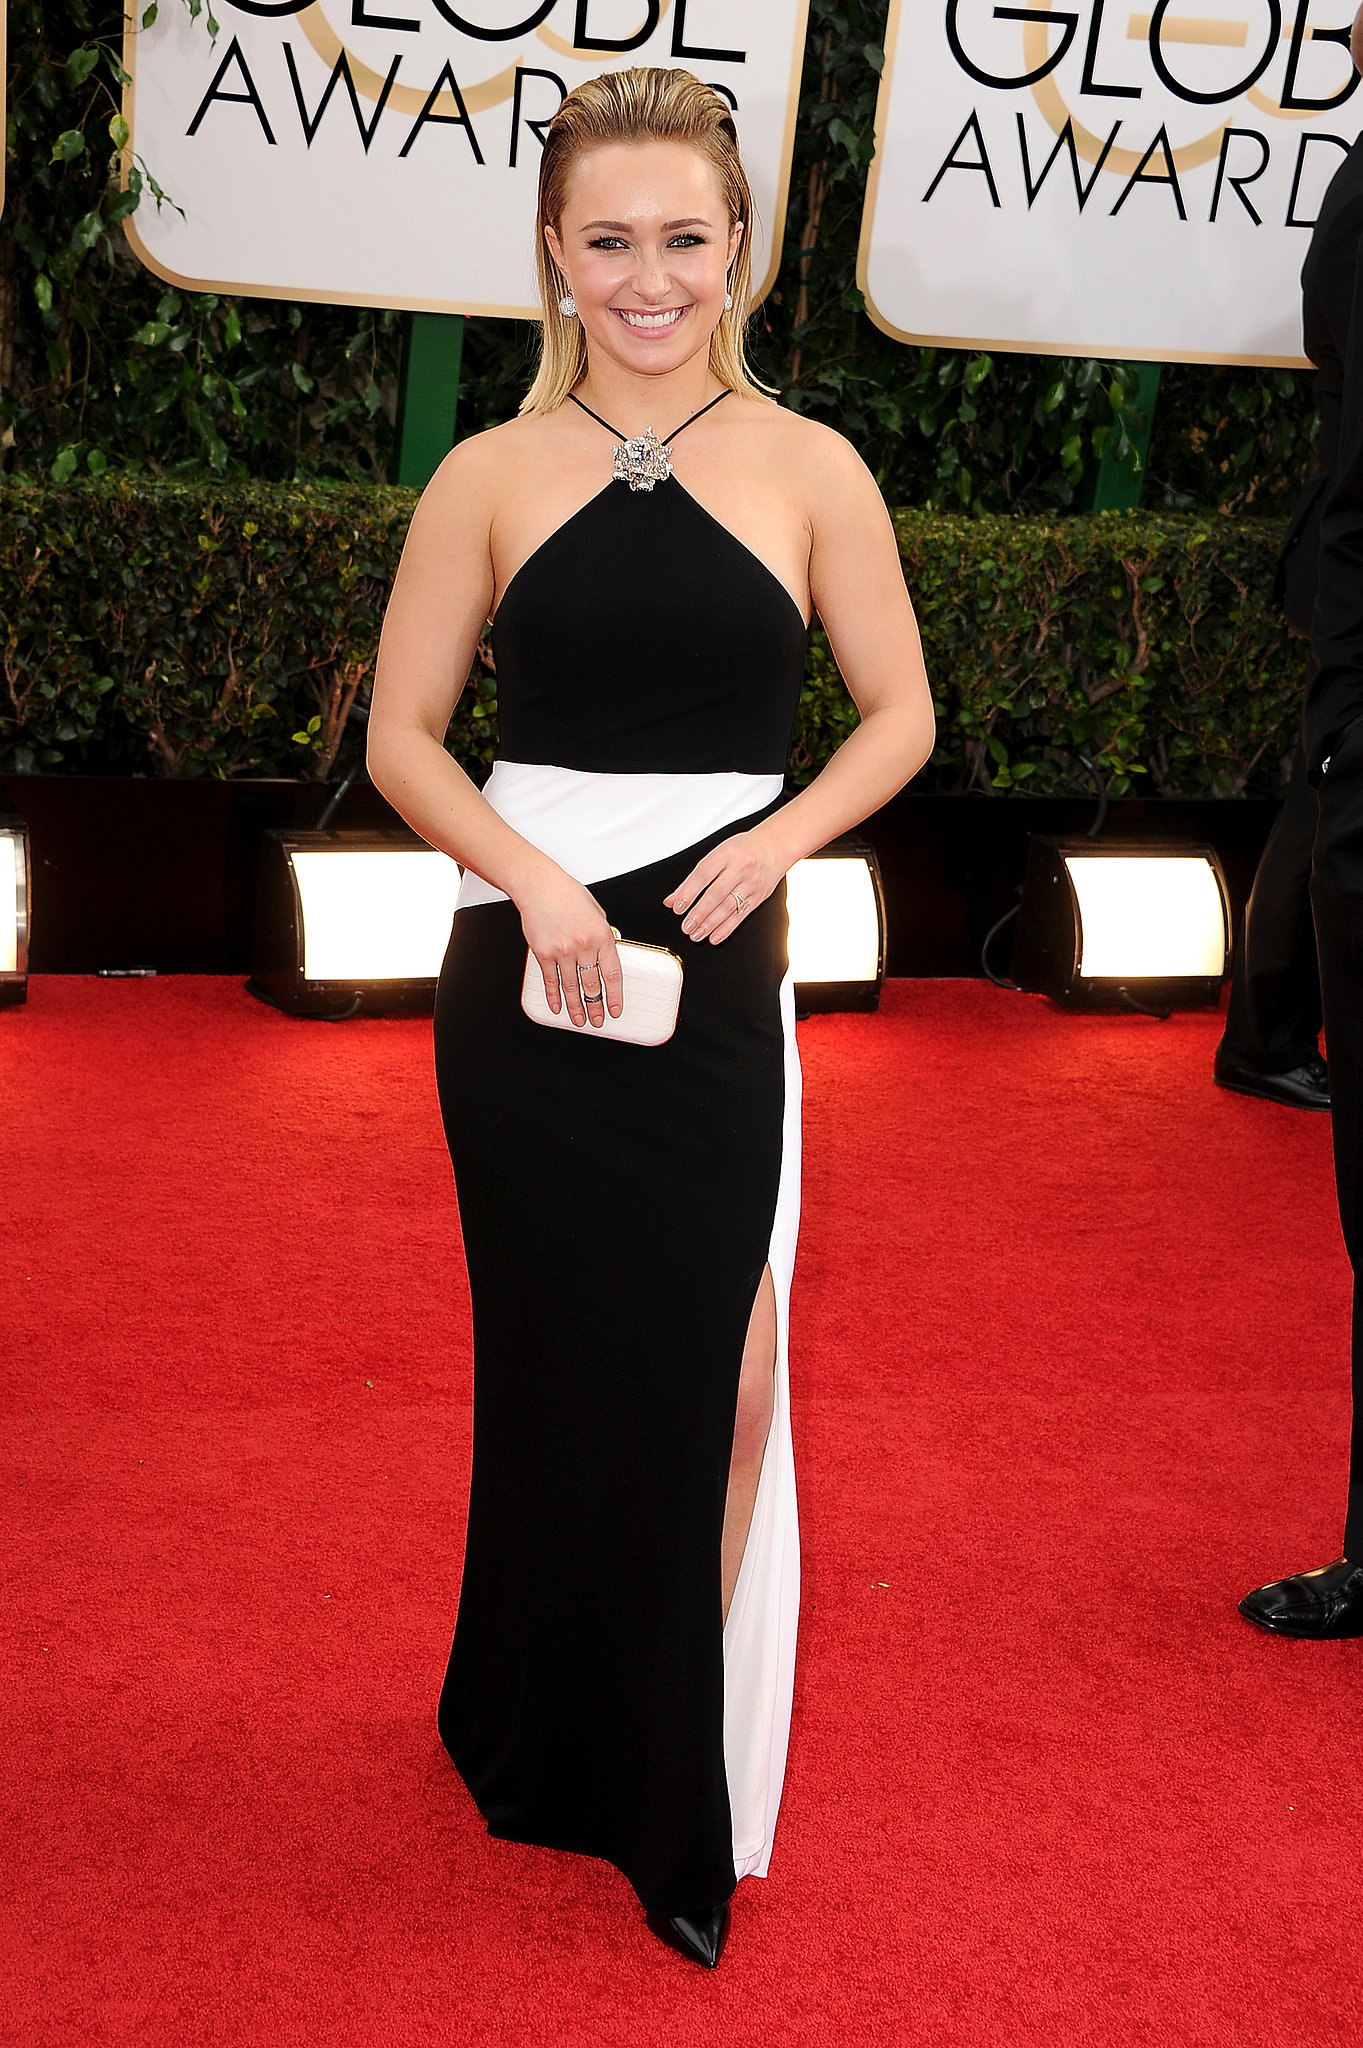 Hayden Panettiere stayed cool in a crisp black and white look for